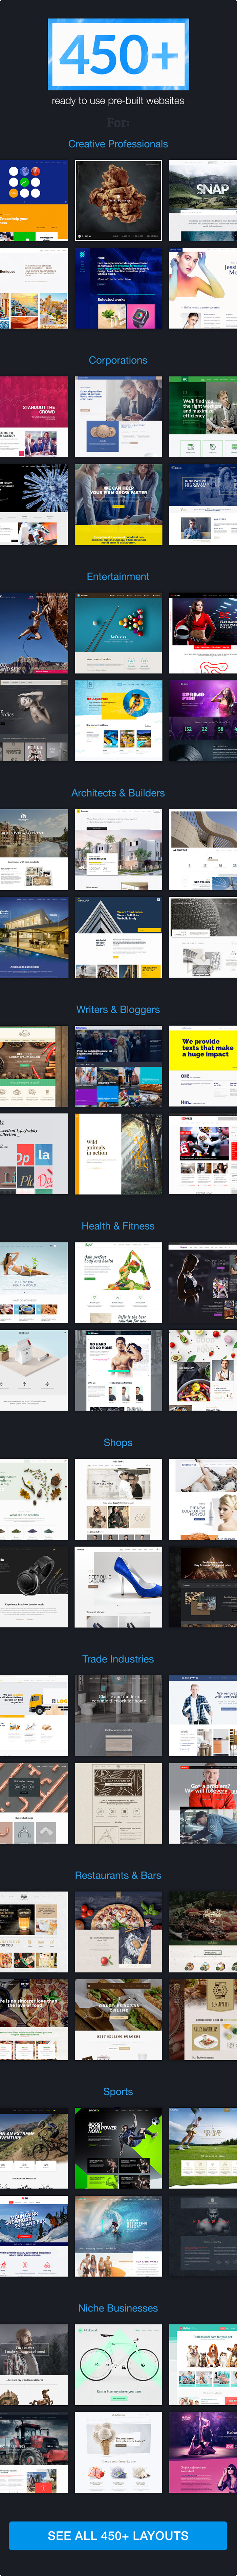 BeTheme - HTML Responsive Multi-Purpose Template - 1